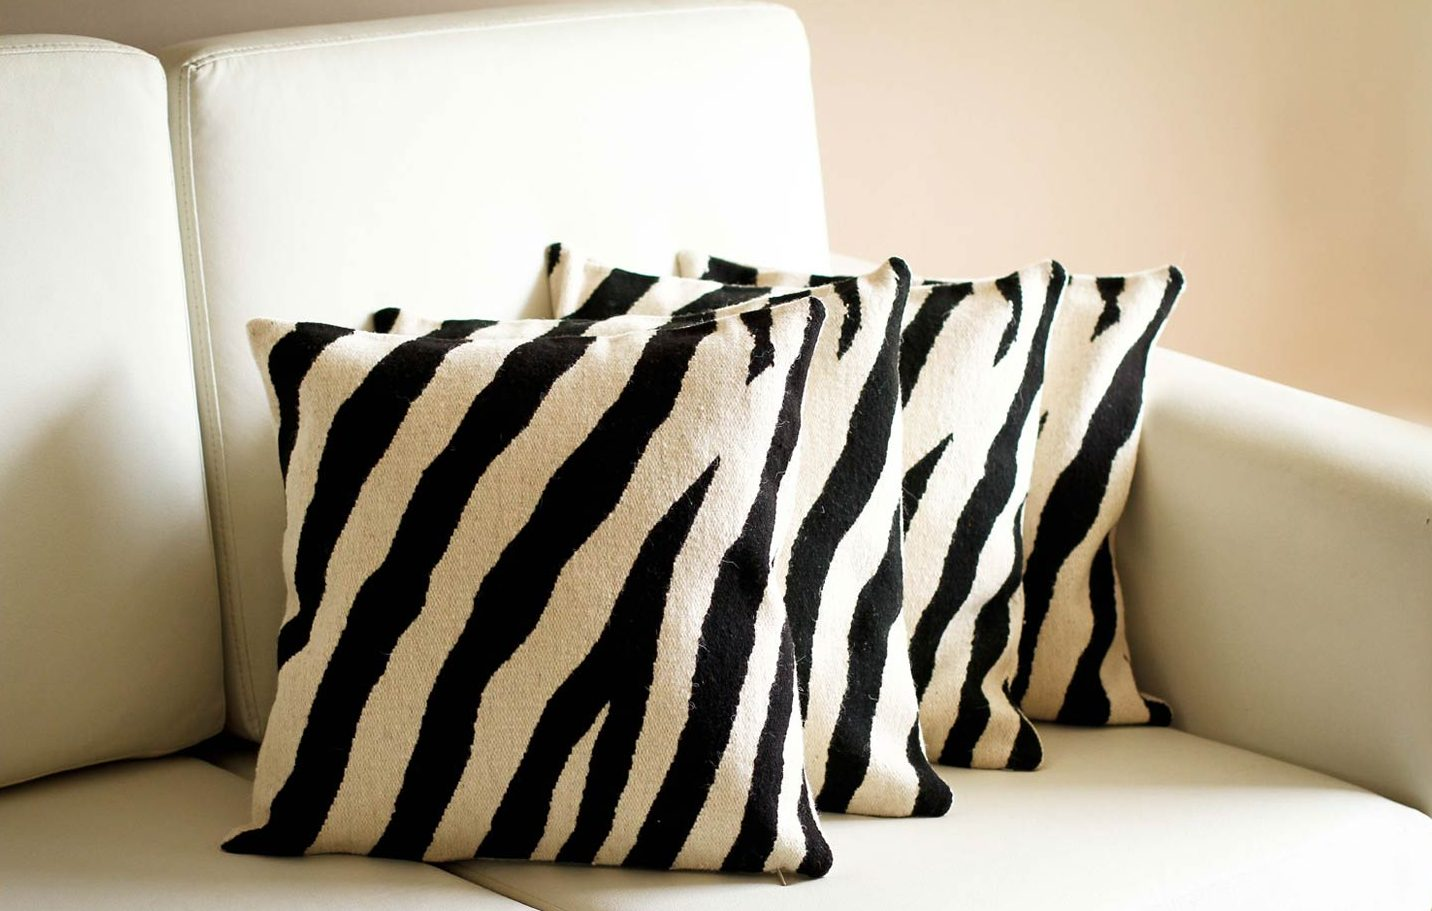 Wool cushion covers, 'Zebra' (set of 4) animal themed